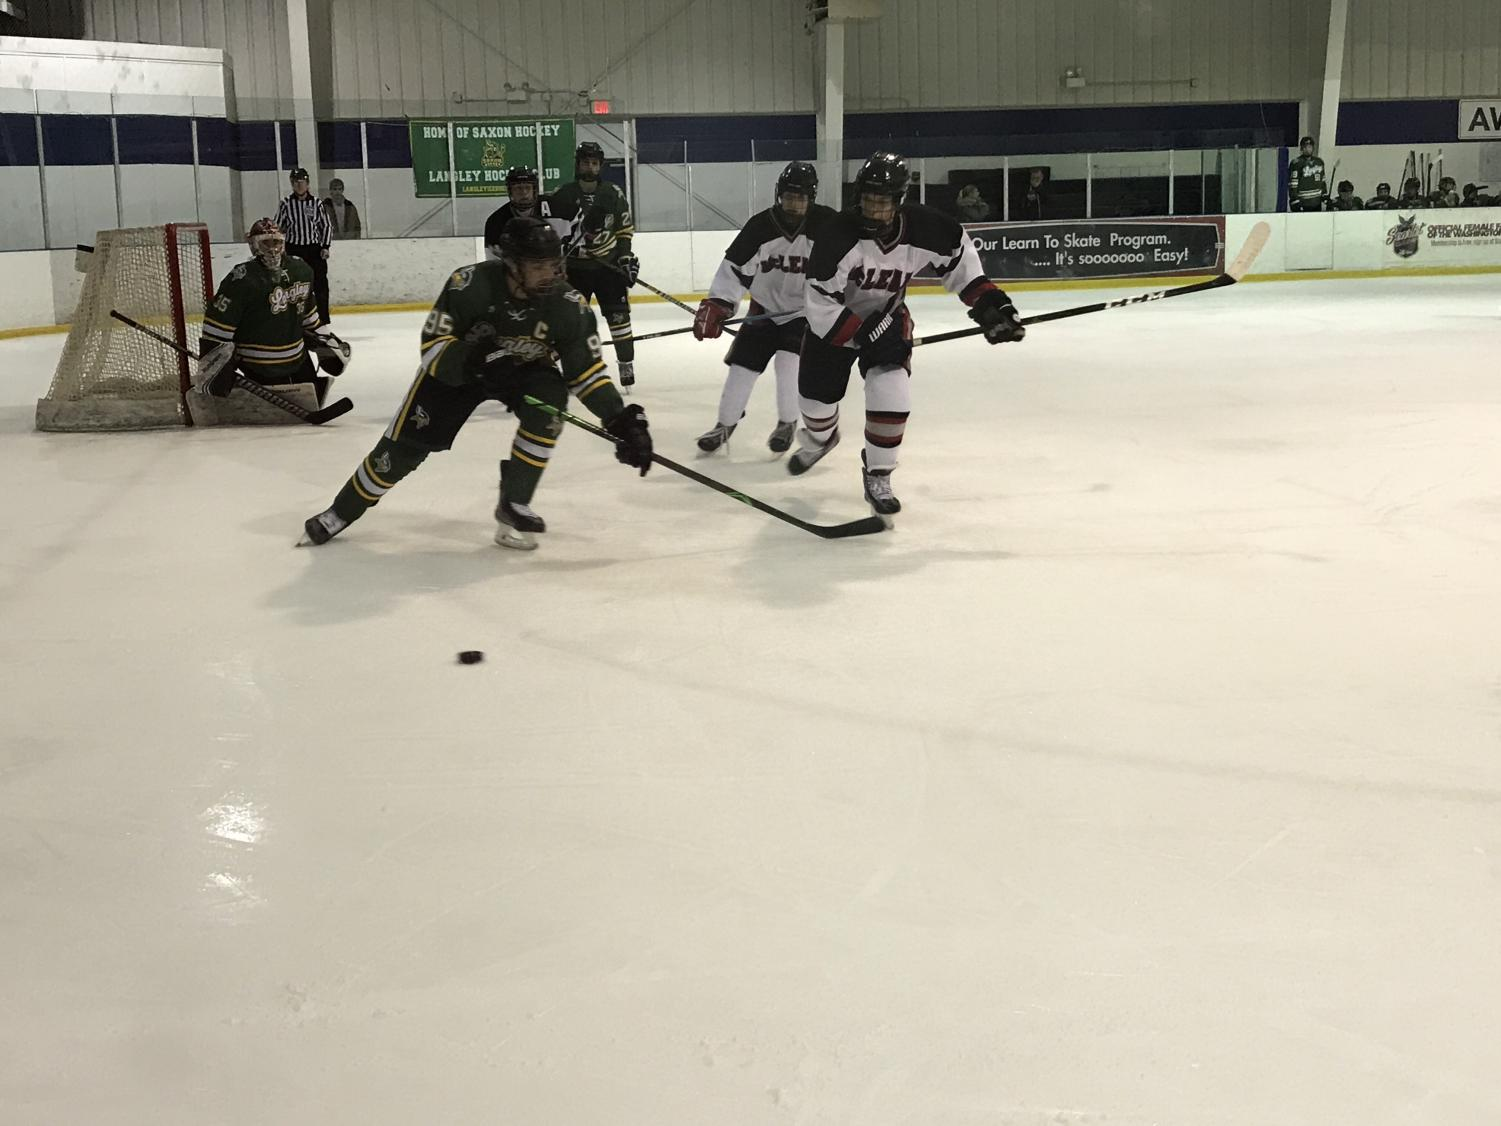 McLean Ice Hockey loses 3-1 to Langley rivals.